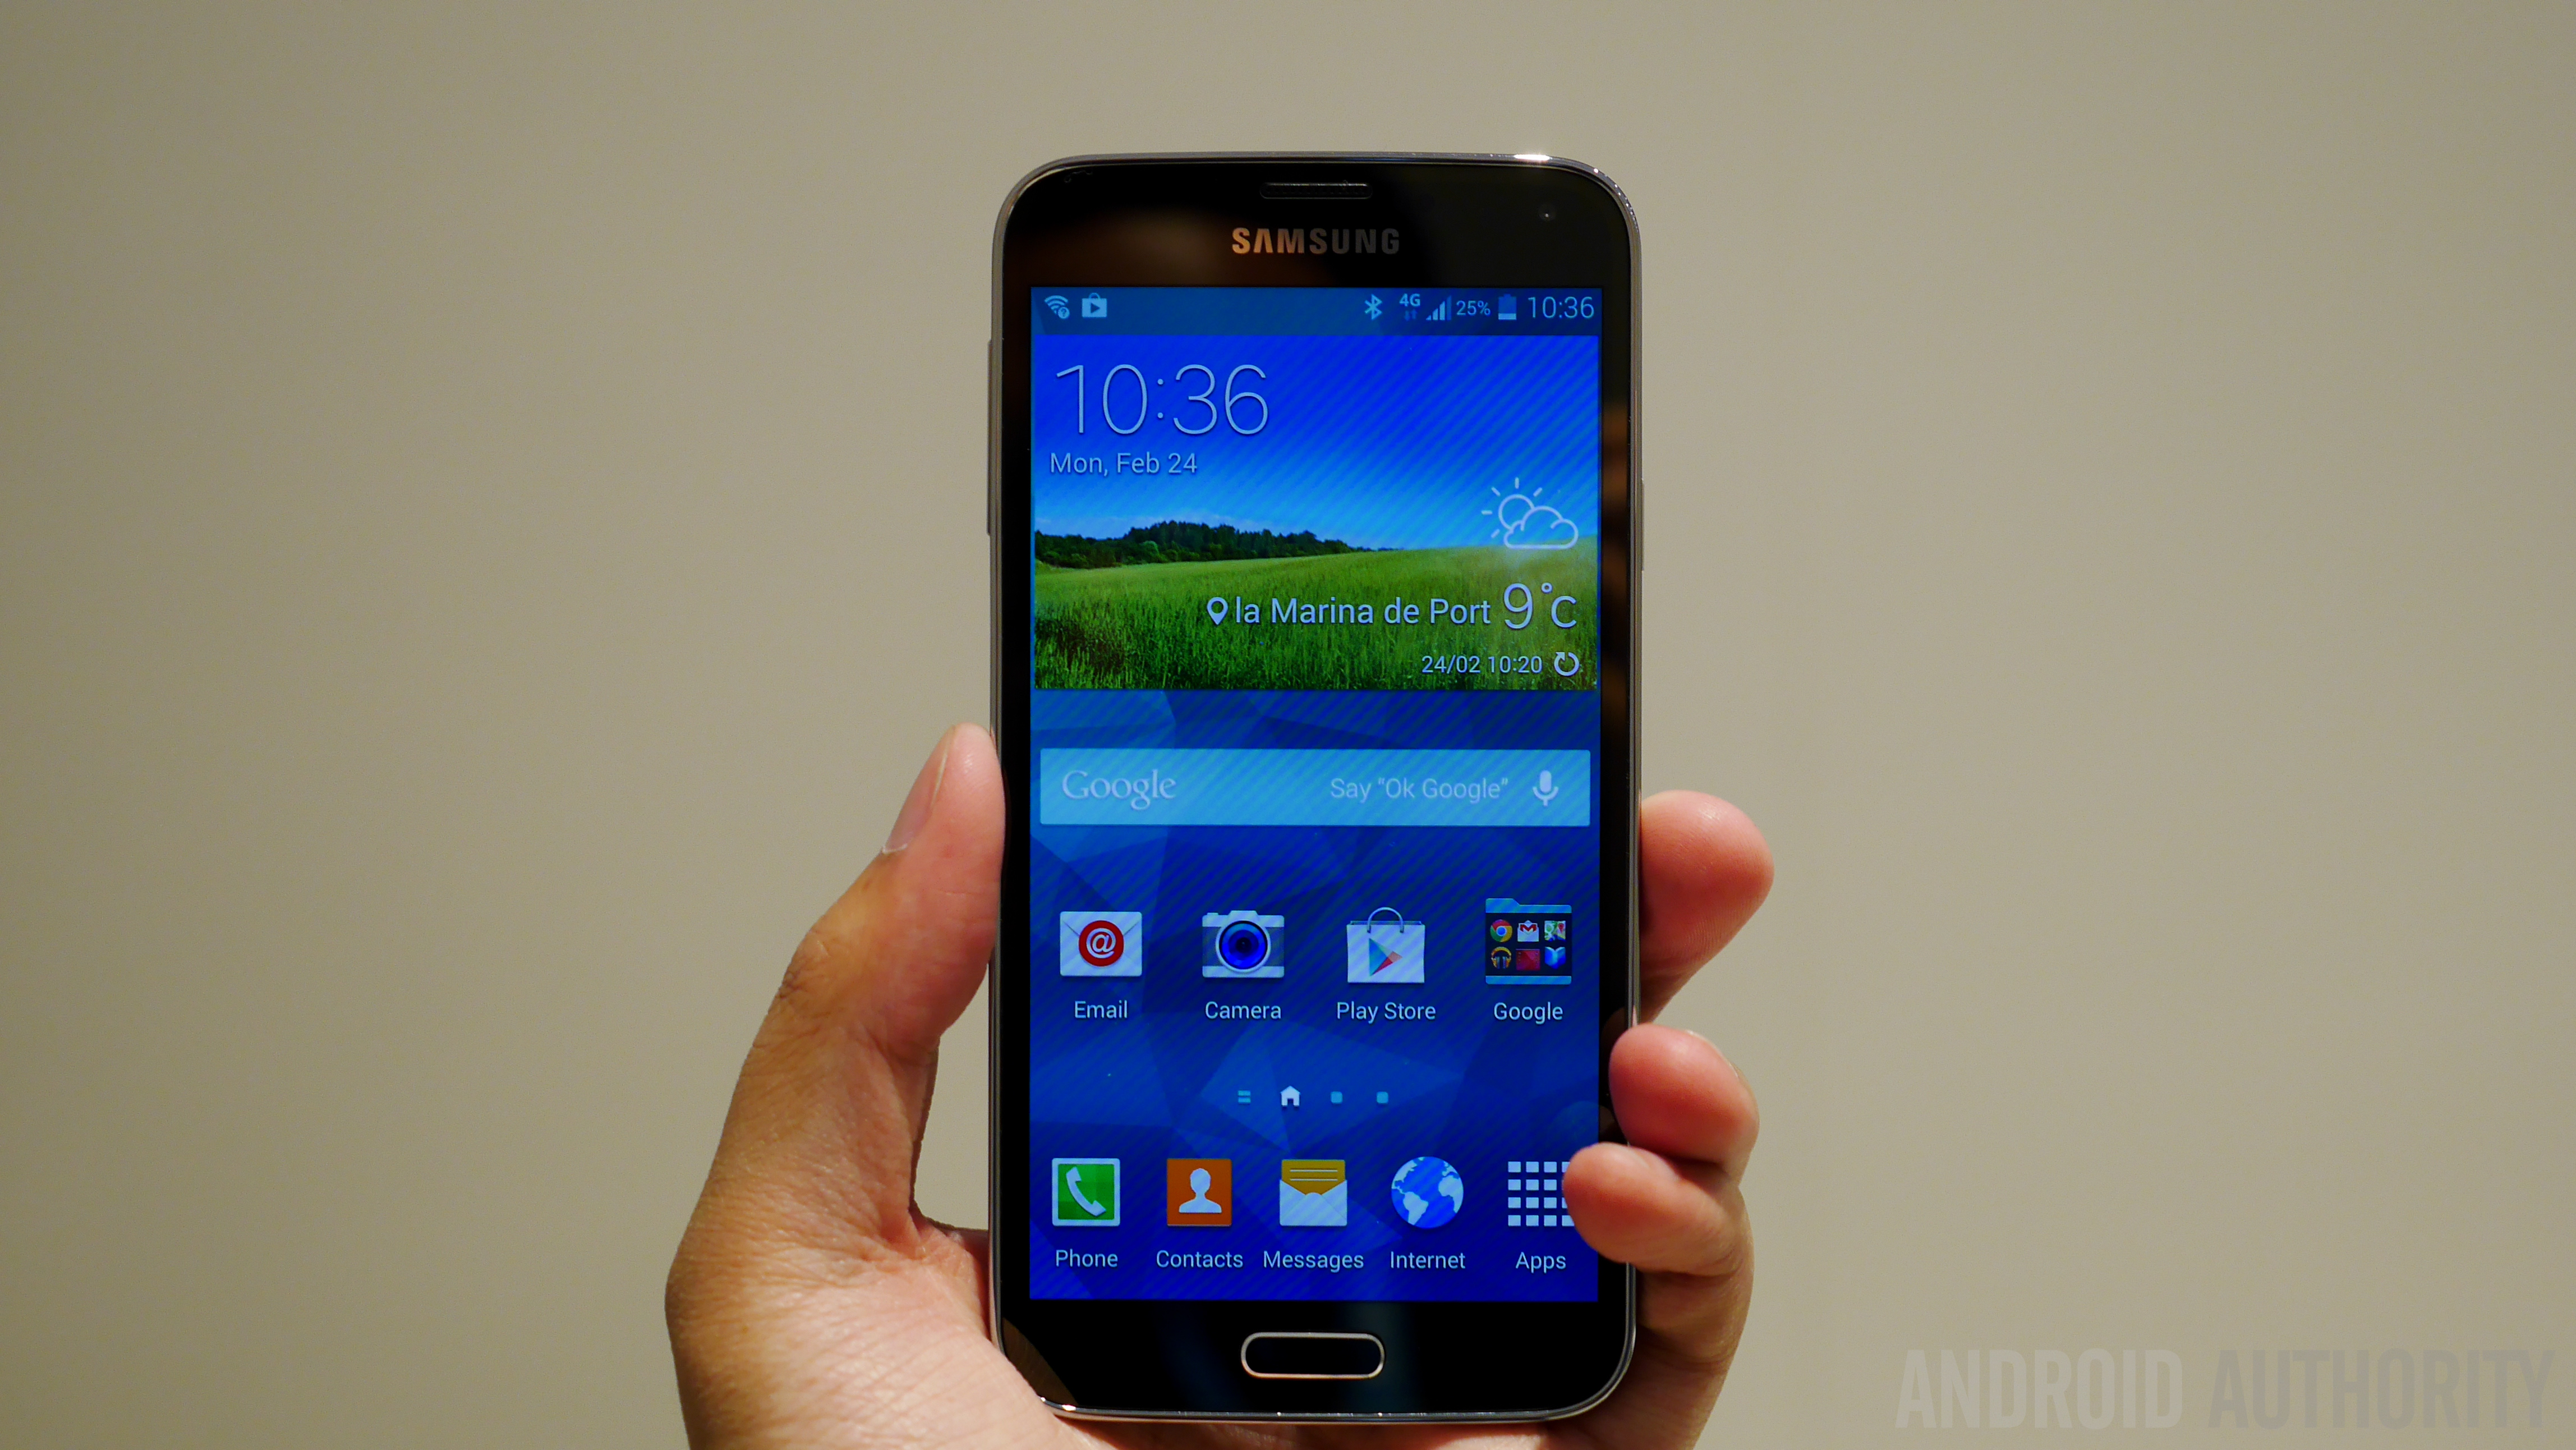 Samsung Galaxy S5 Hands on MWC 2014-1160048